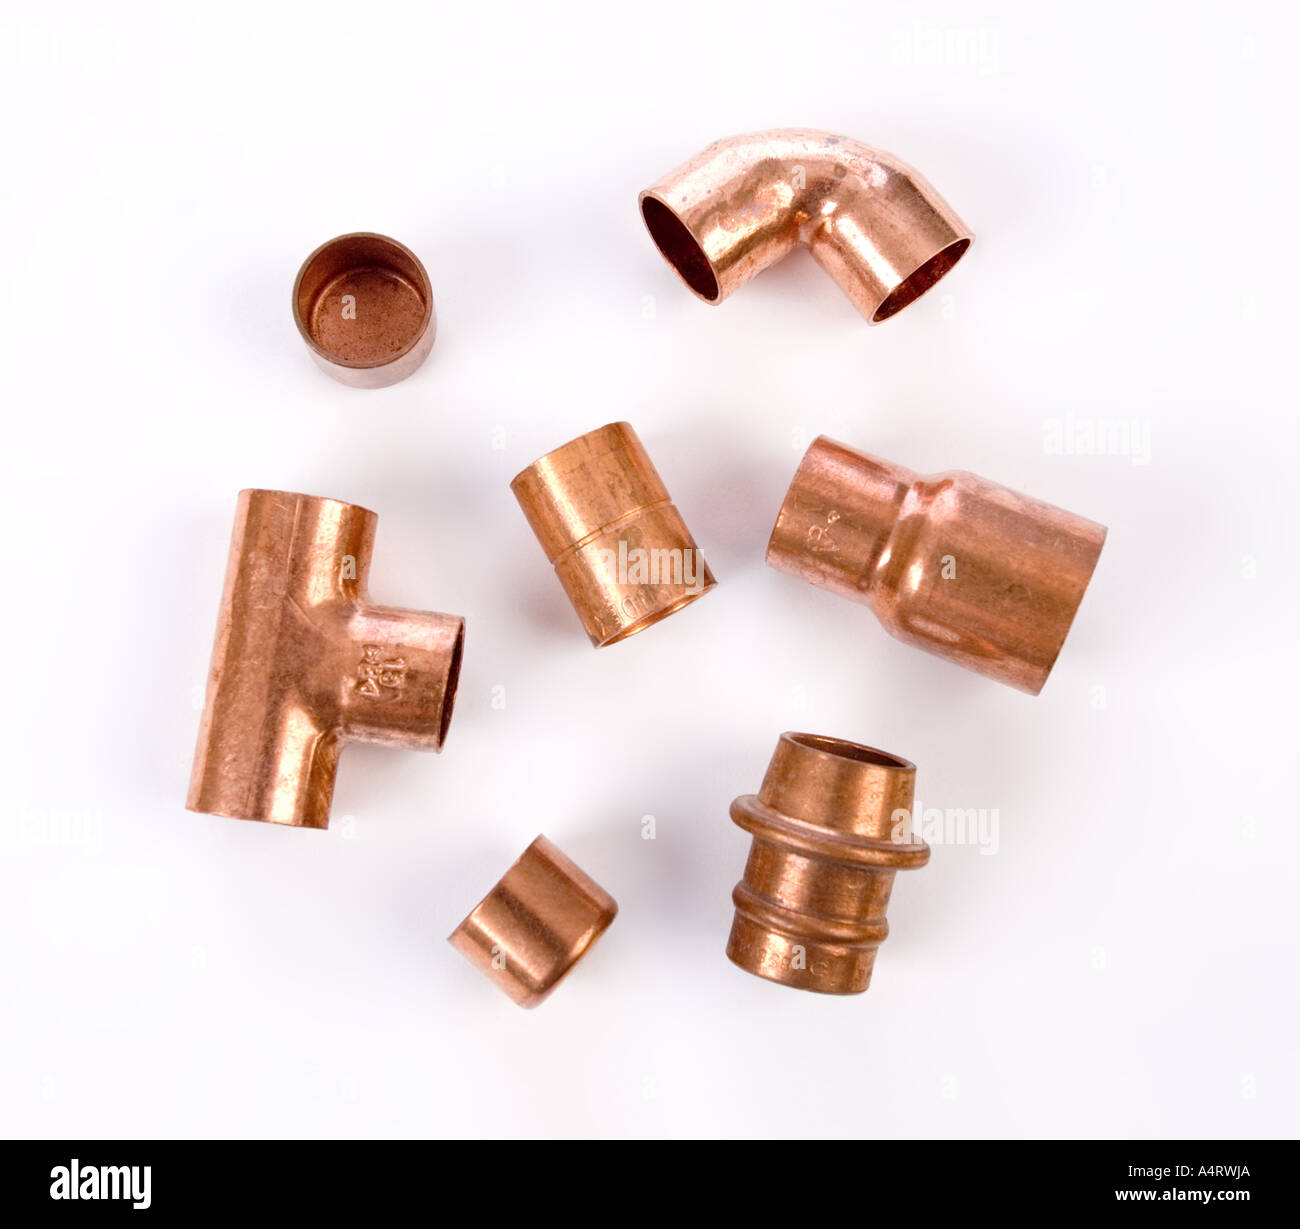 copper pipe fittings and joints - Stock Image